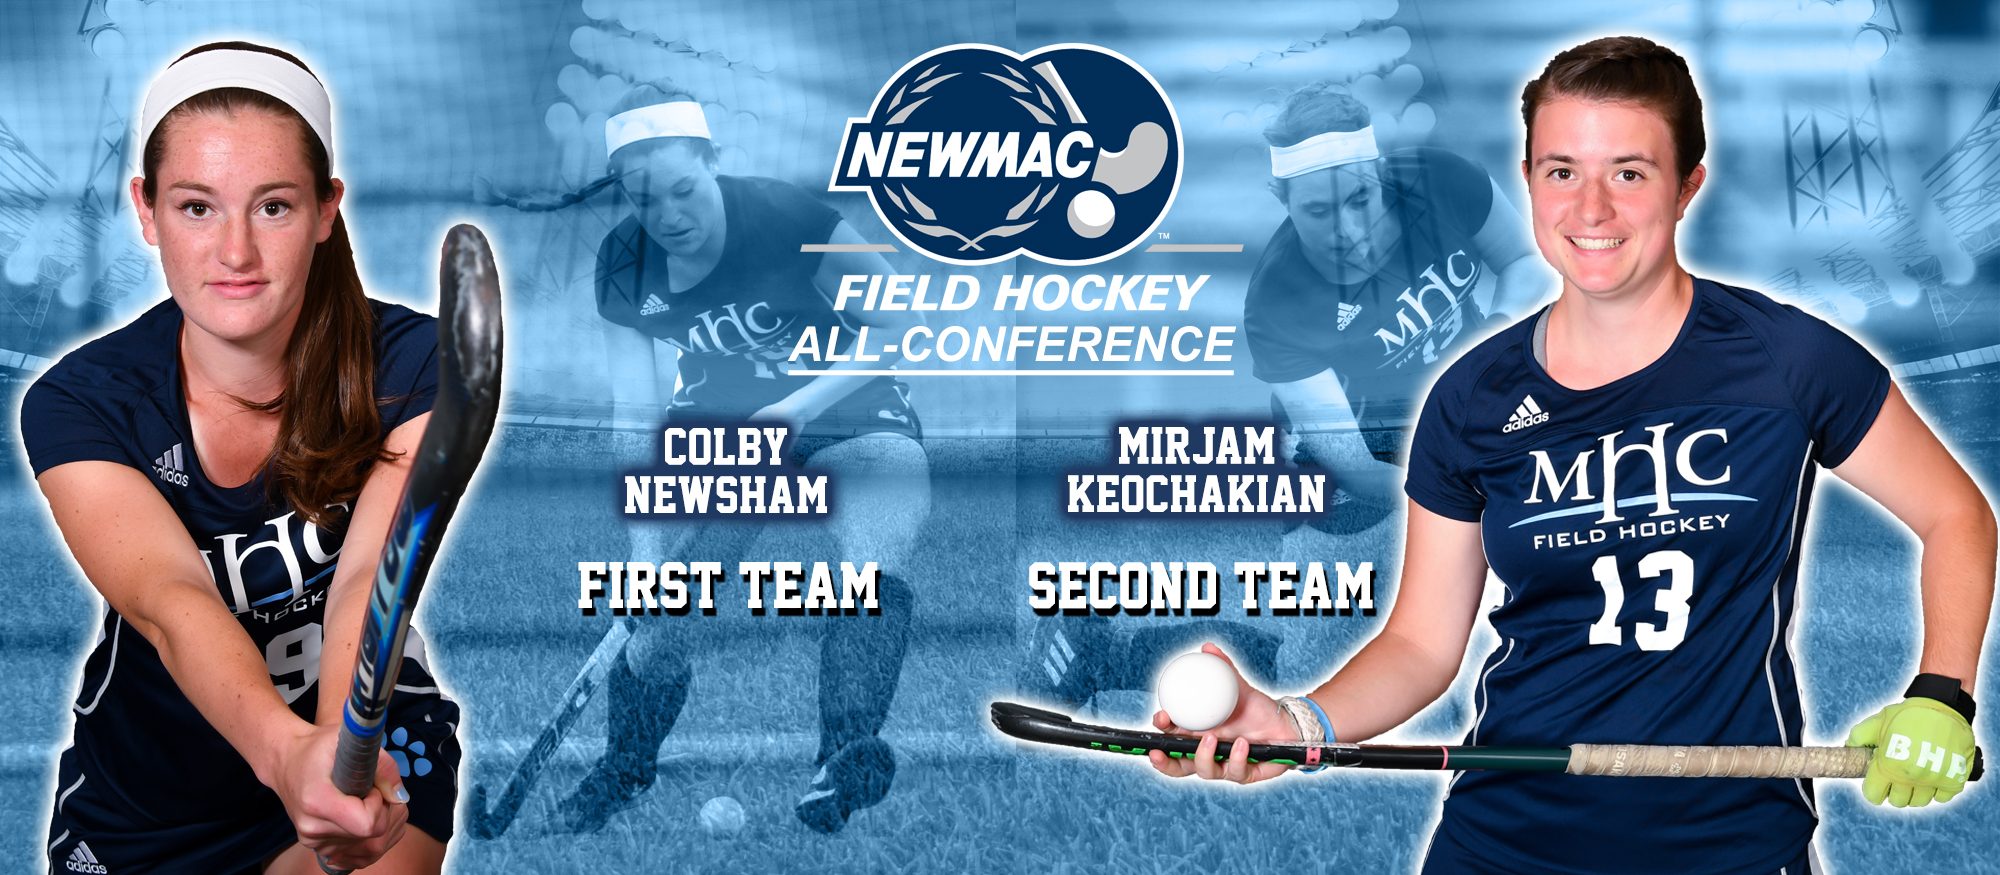 Collage photo showing Lyons field hockey seniors Colby Newsham and Mirjam Keochakian, both were named to the NEWMAC All-Conference Teams on Nov. 6, 2018. Newsham on First Team, Keochakian on Second Team.